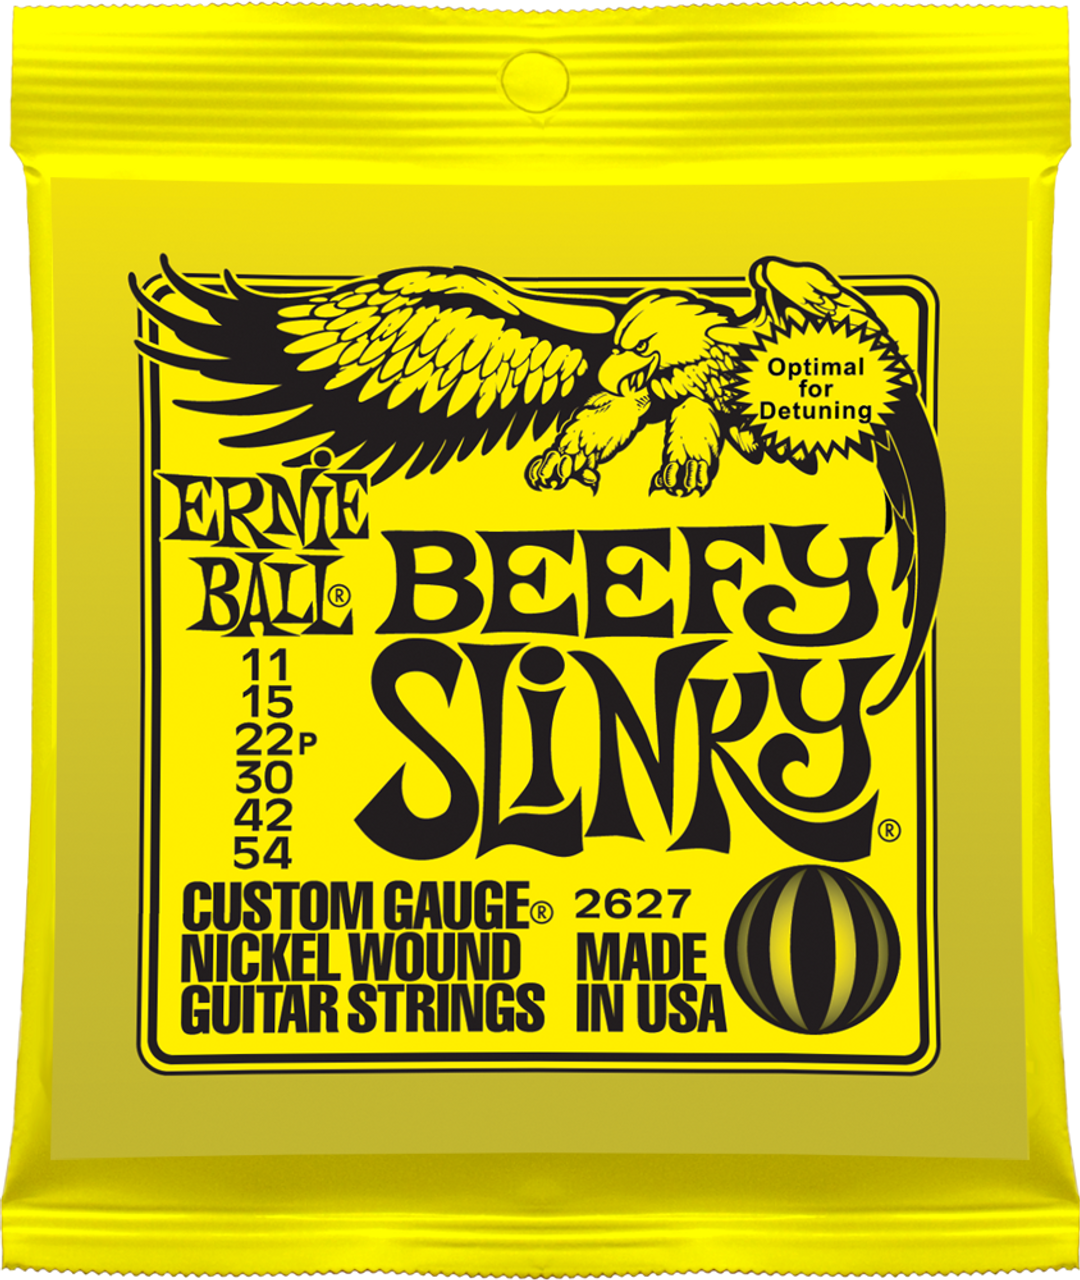 Ernie Ball 2627 Slinky Electric Guitar Strings